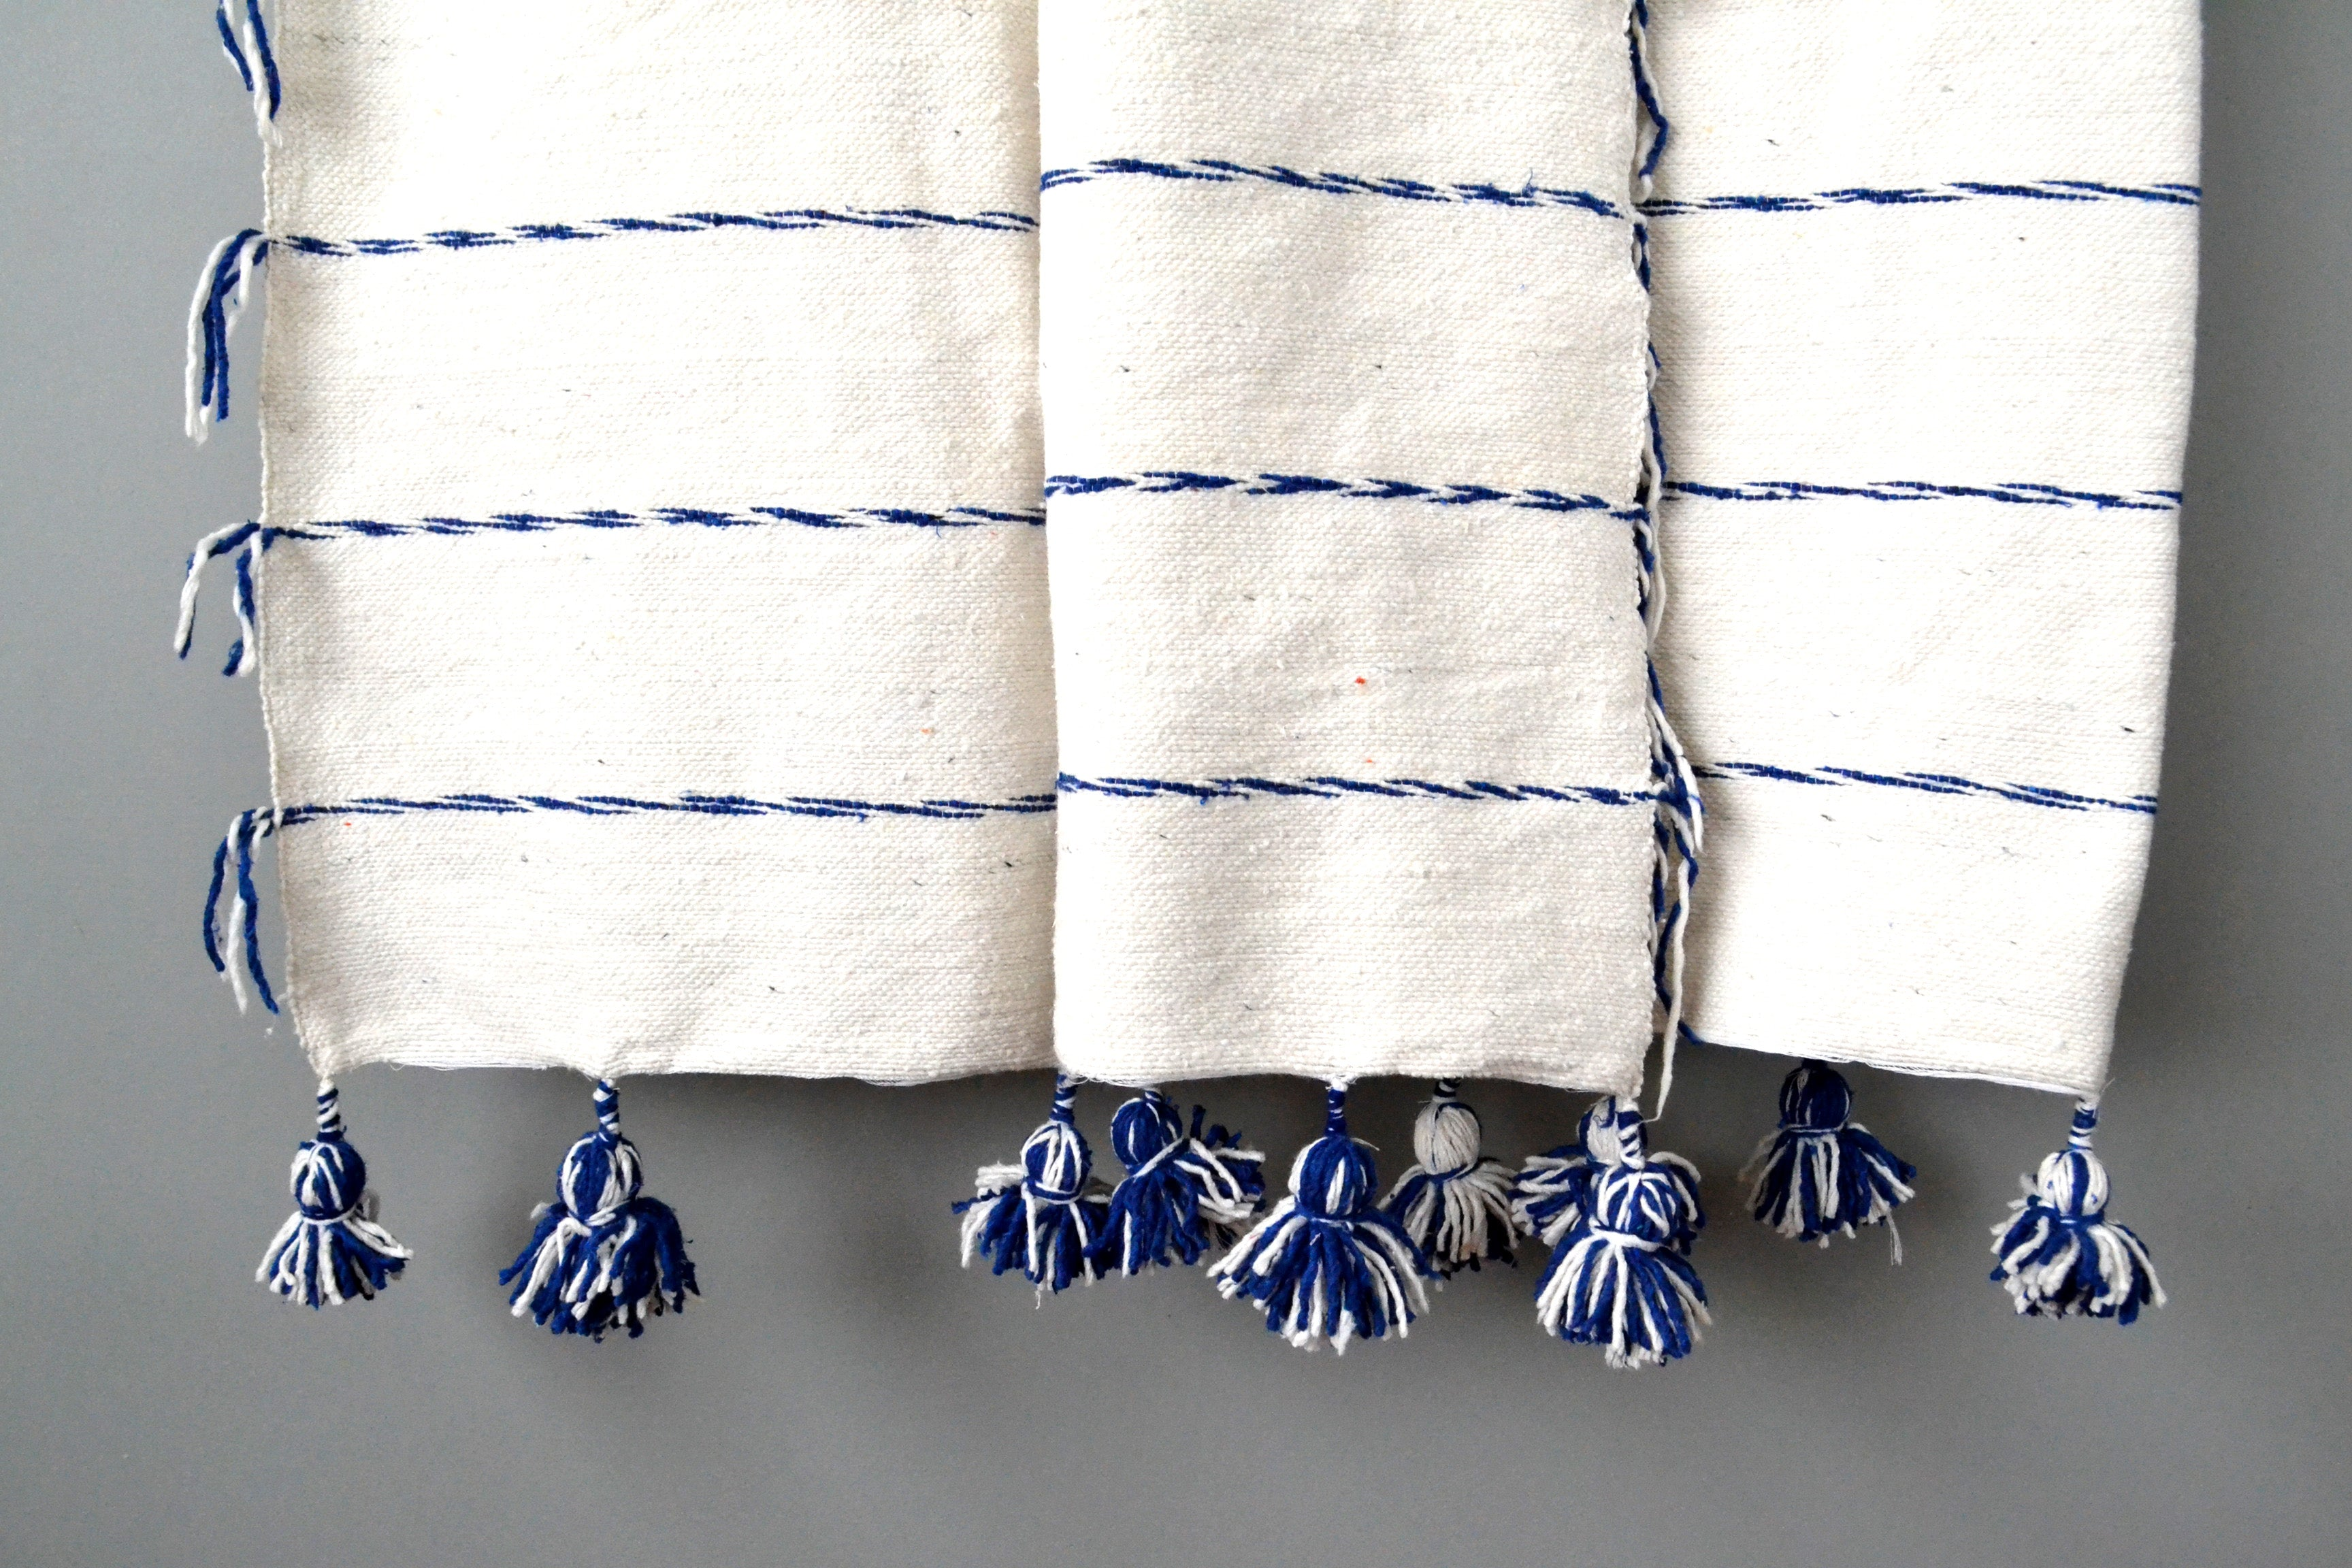 Blue and Ivory Fringe Pom Pom Cotton Throw by Yuba Mercantile